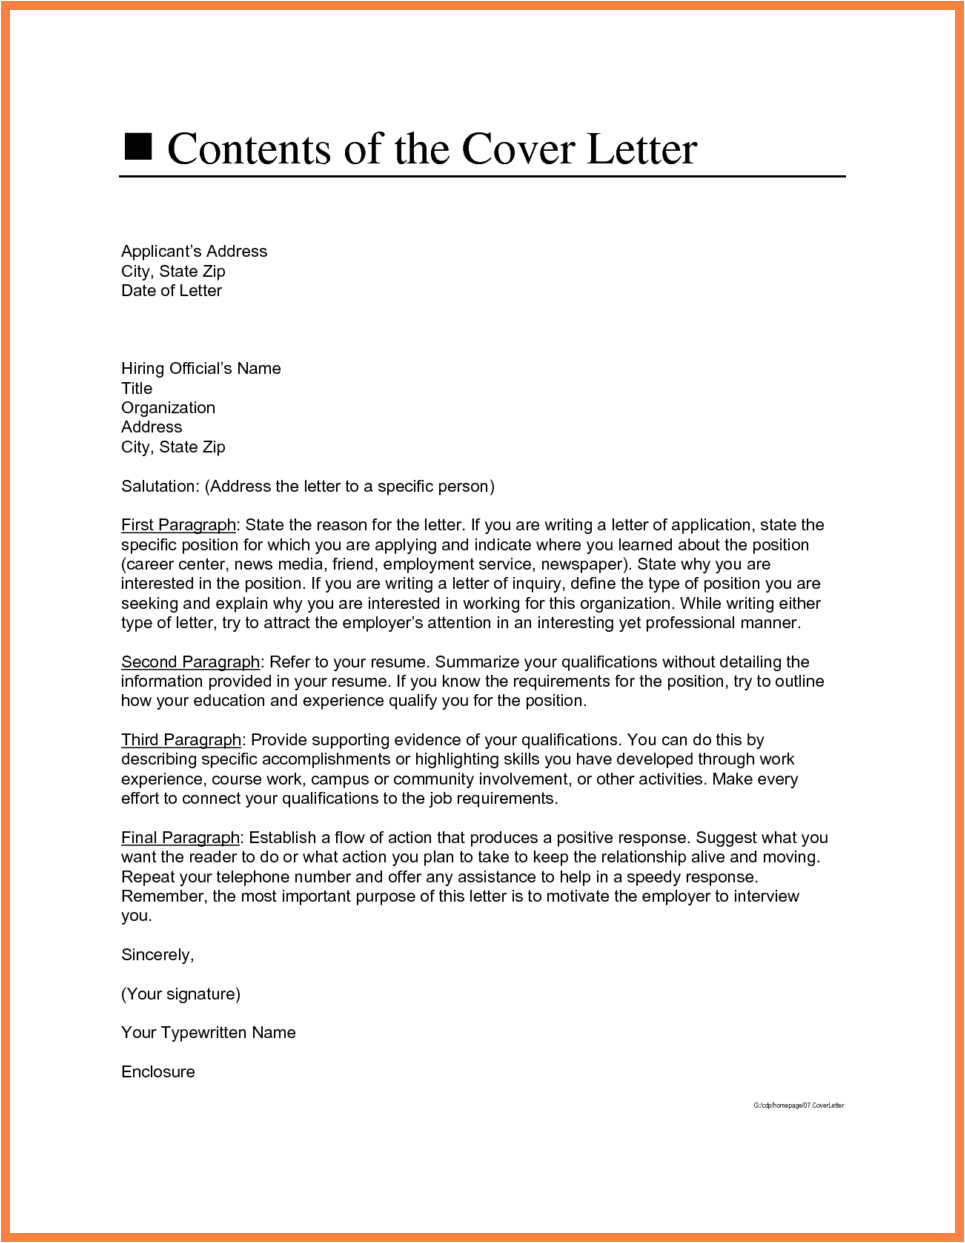 Who Should You Address A Cover Letter to 5 Cover Letter Address Marital Settlements Information